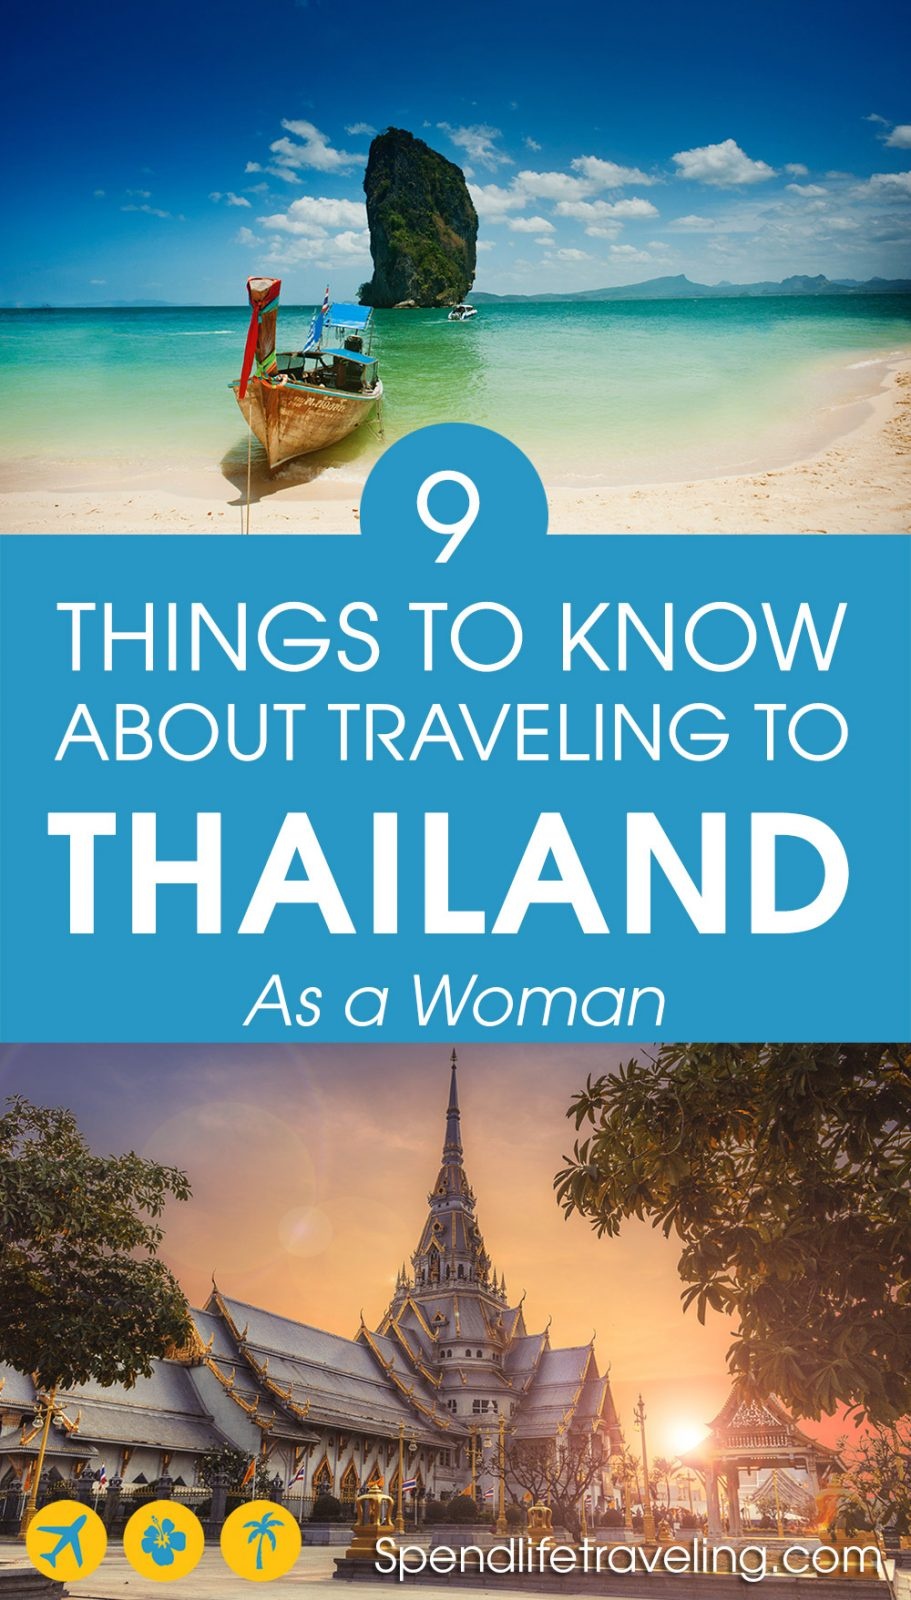 Is Thailand safe to travel? Yes, it is. But check out these useful things to know about visiting Thailand. Some tips specifically for female travelers, some general tips for traveling in Thailand.